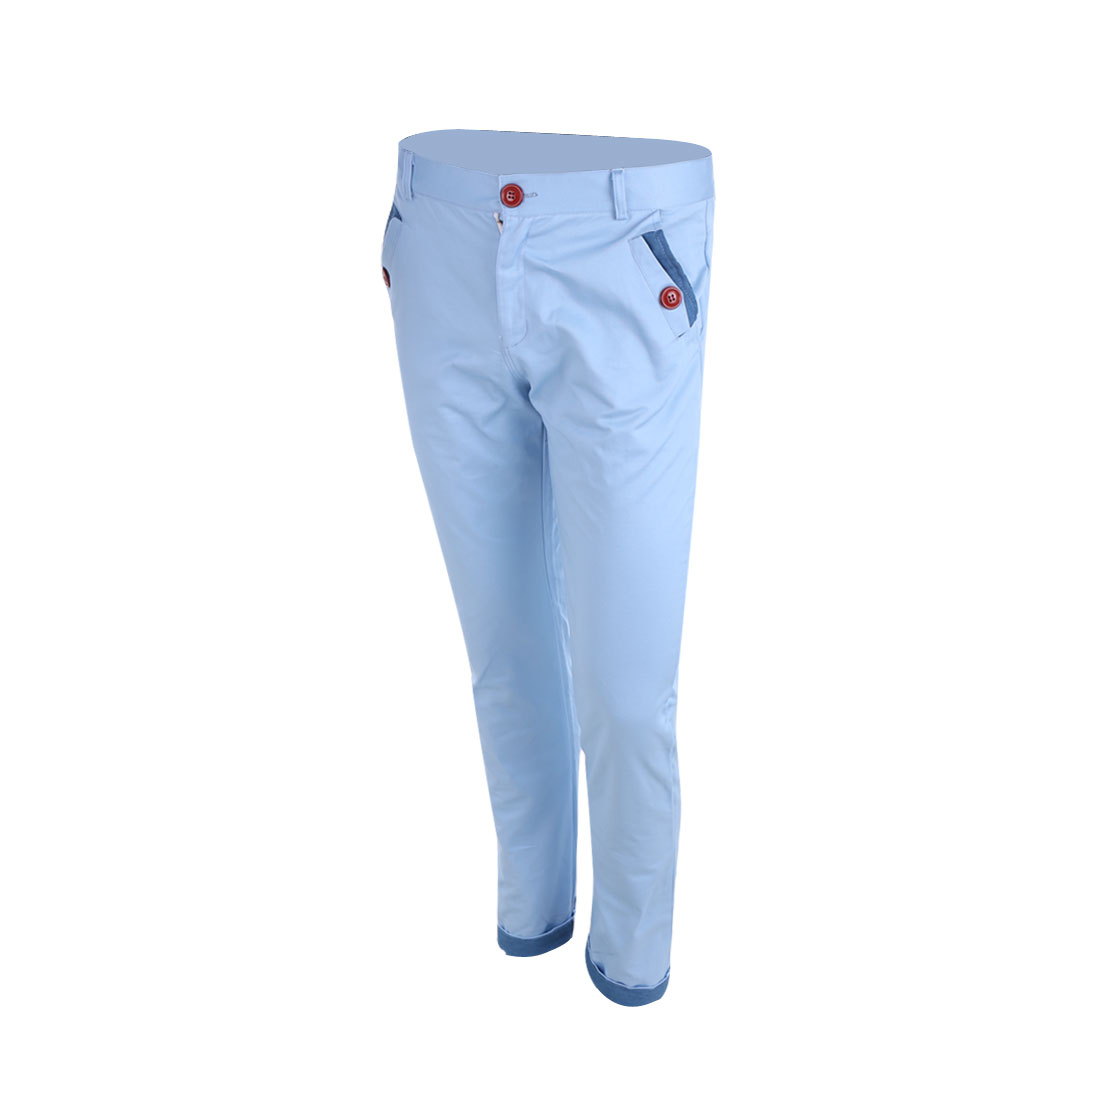 W32 Light Blue Zipper Fly Back Pockets Slim Fit Roll-Up Pants for Men